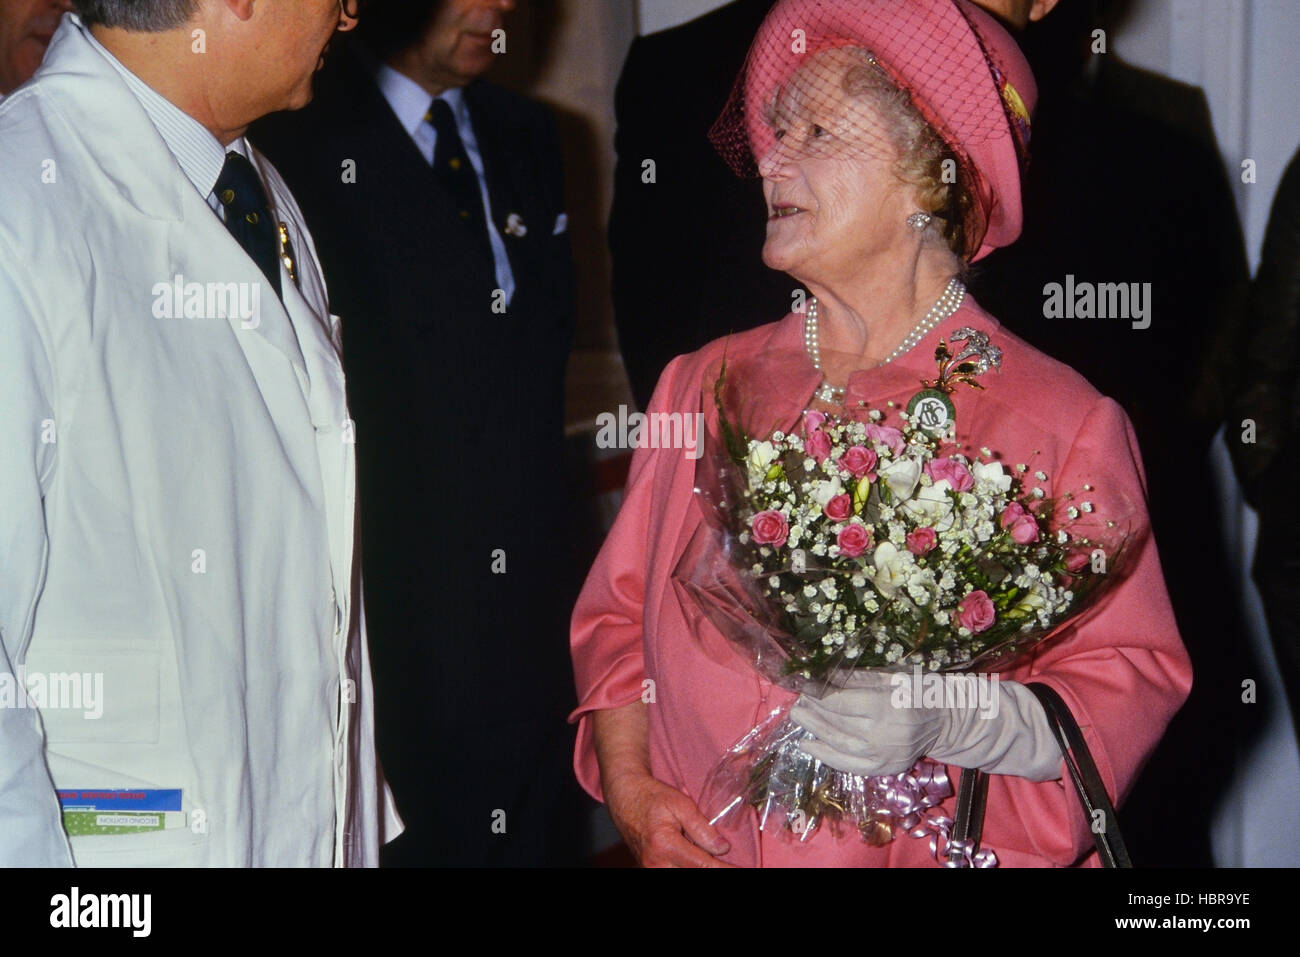 Queen Mother at the Royal Smithfield Show 1989. - Stock Image